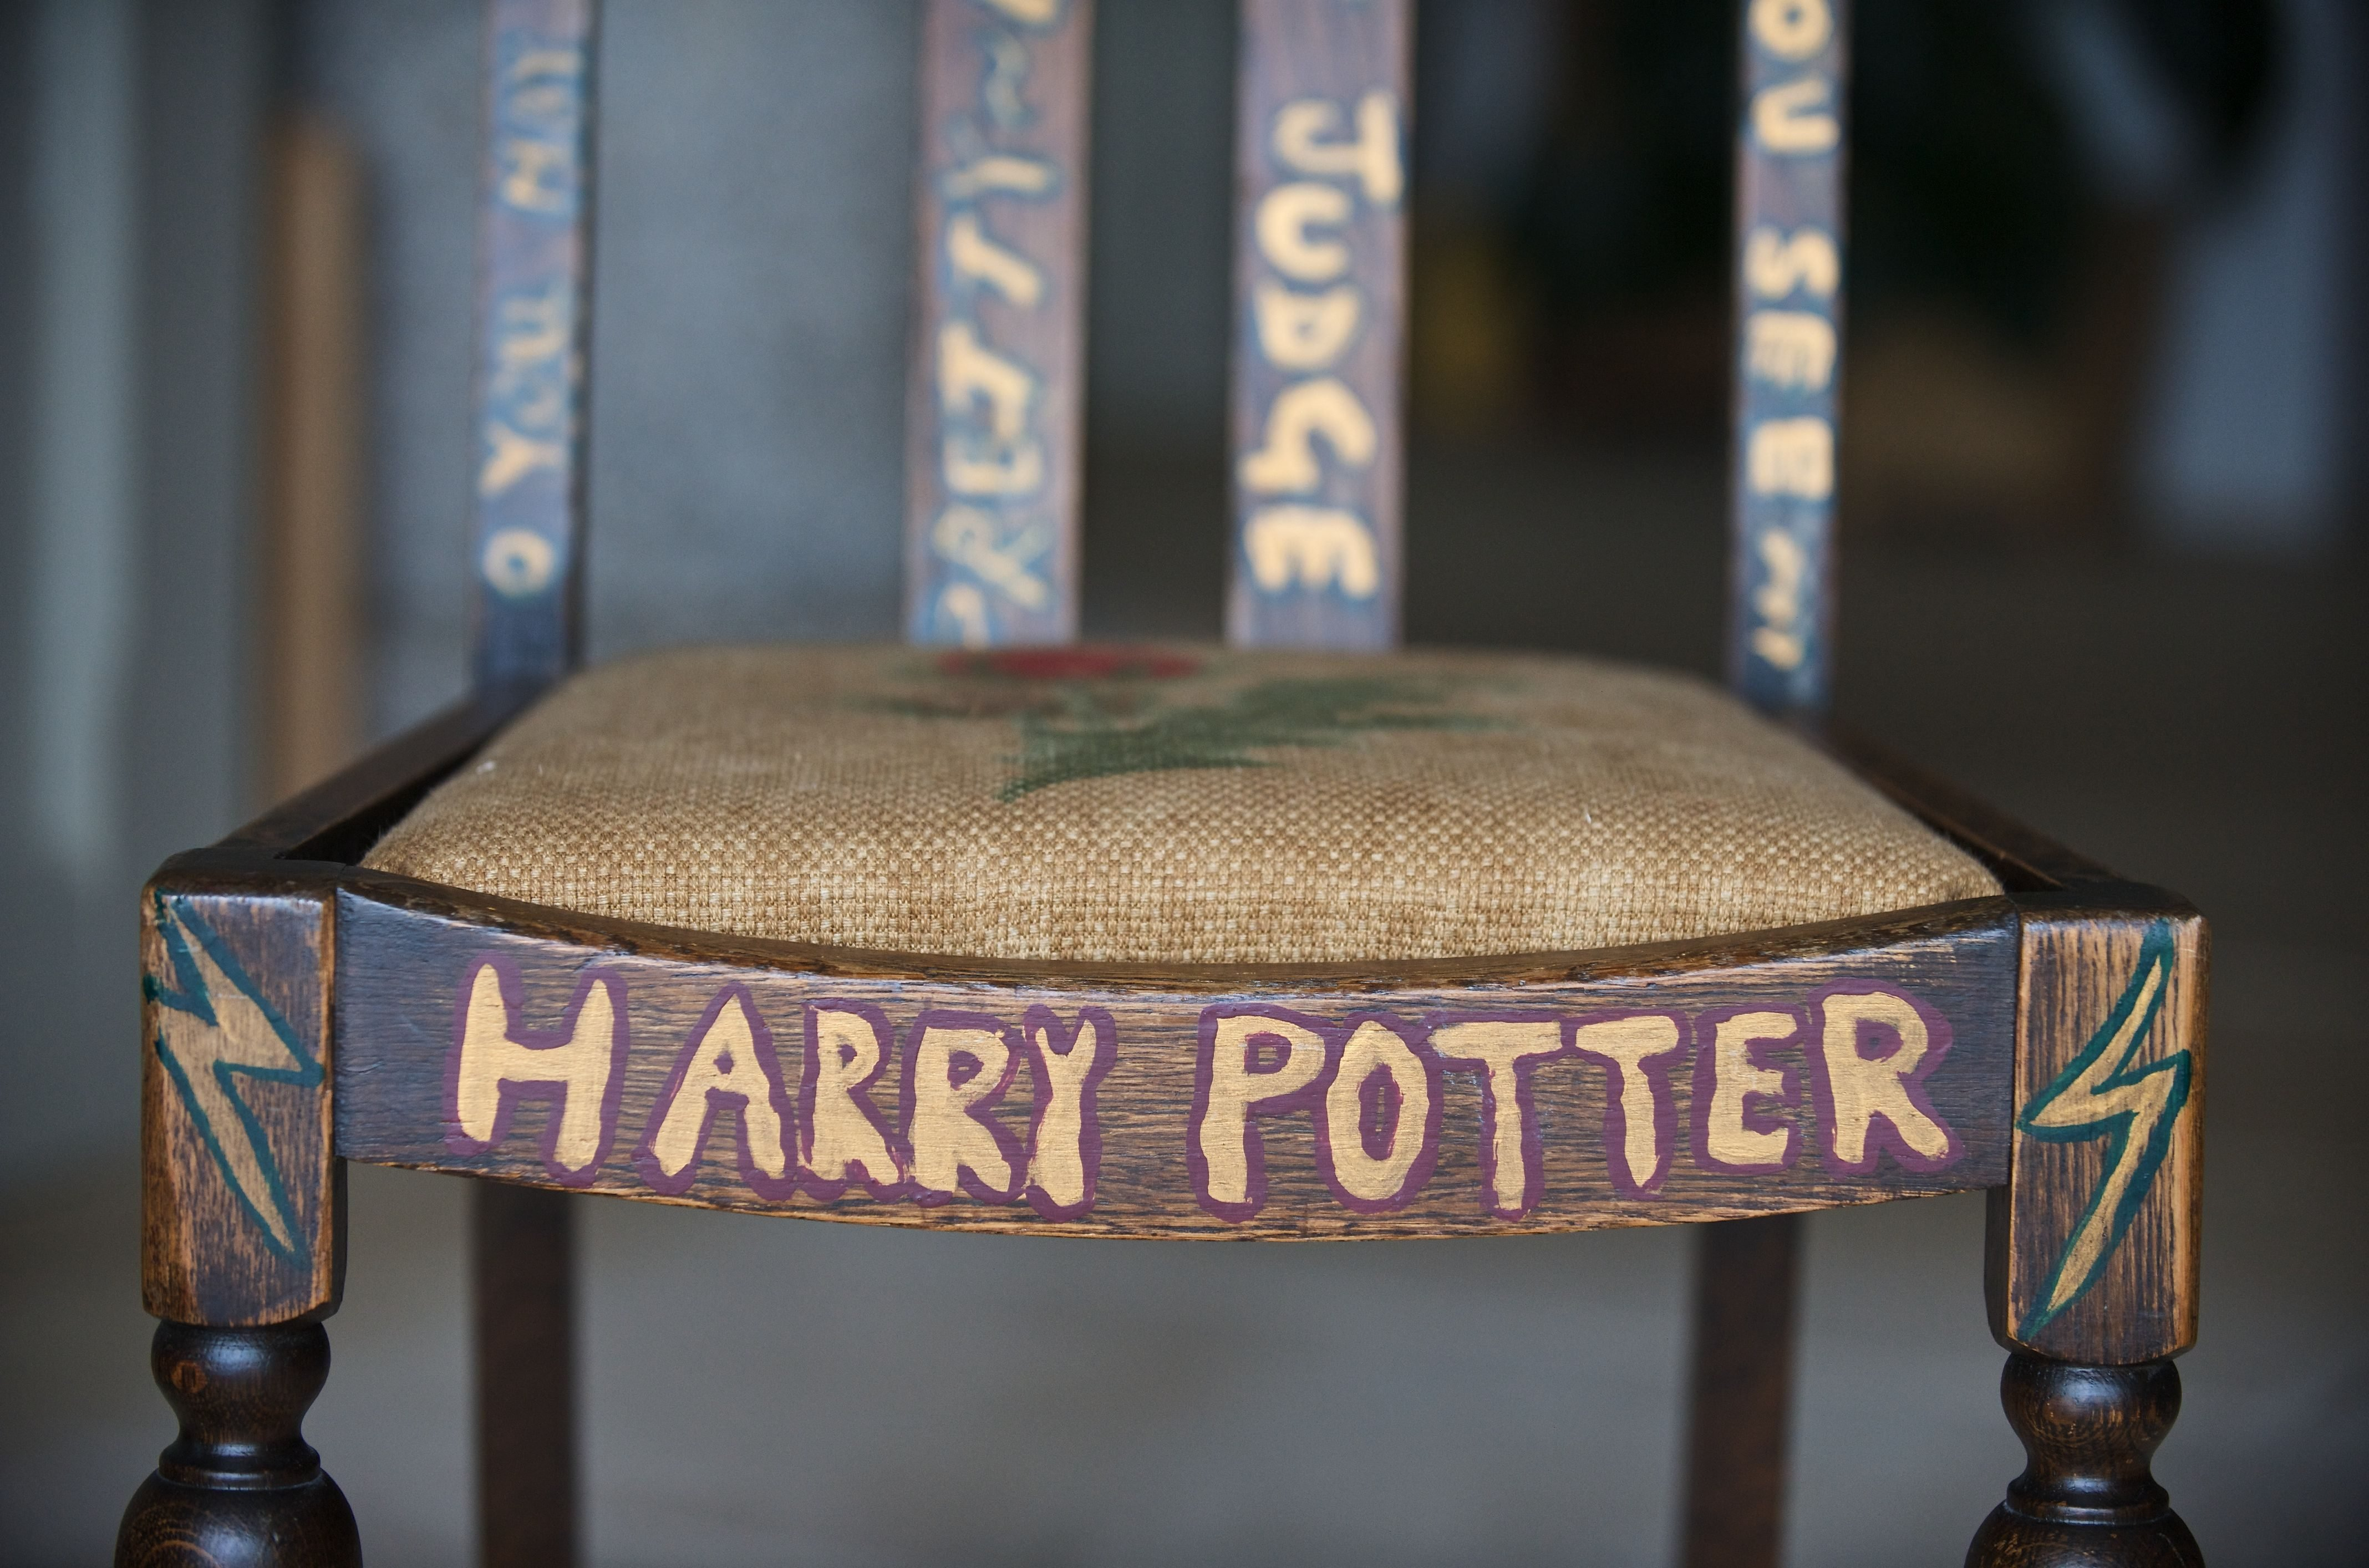 Exclusive - Premium Rates Apply. Call your Account Manager for pricing. Mandatory Credit: Photo by Matthew Ford/Shutterstock (977414s) Harry Potter Chair decorated by JK Rowling Chair on which JK Rowling sat when writing Harry Potter to be auctioned on ebay, Devon, Britain - Jul 2009